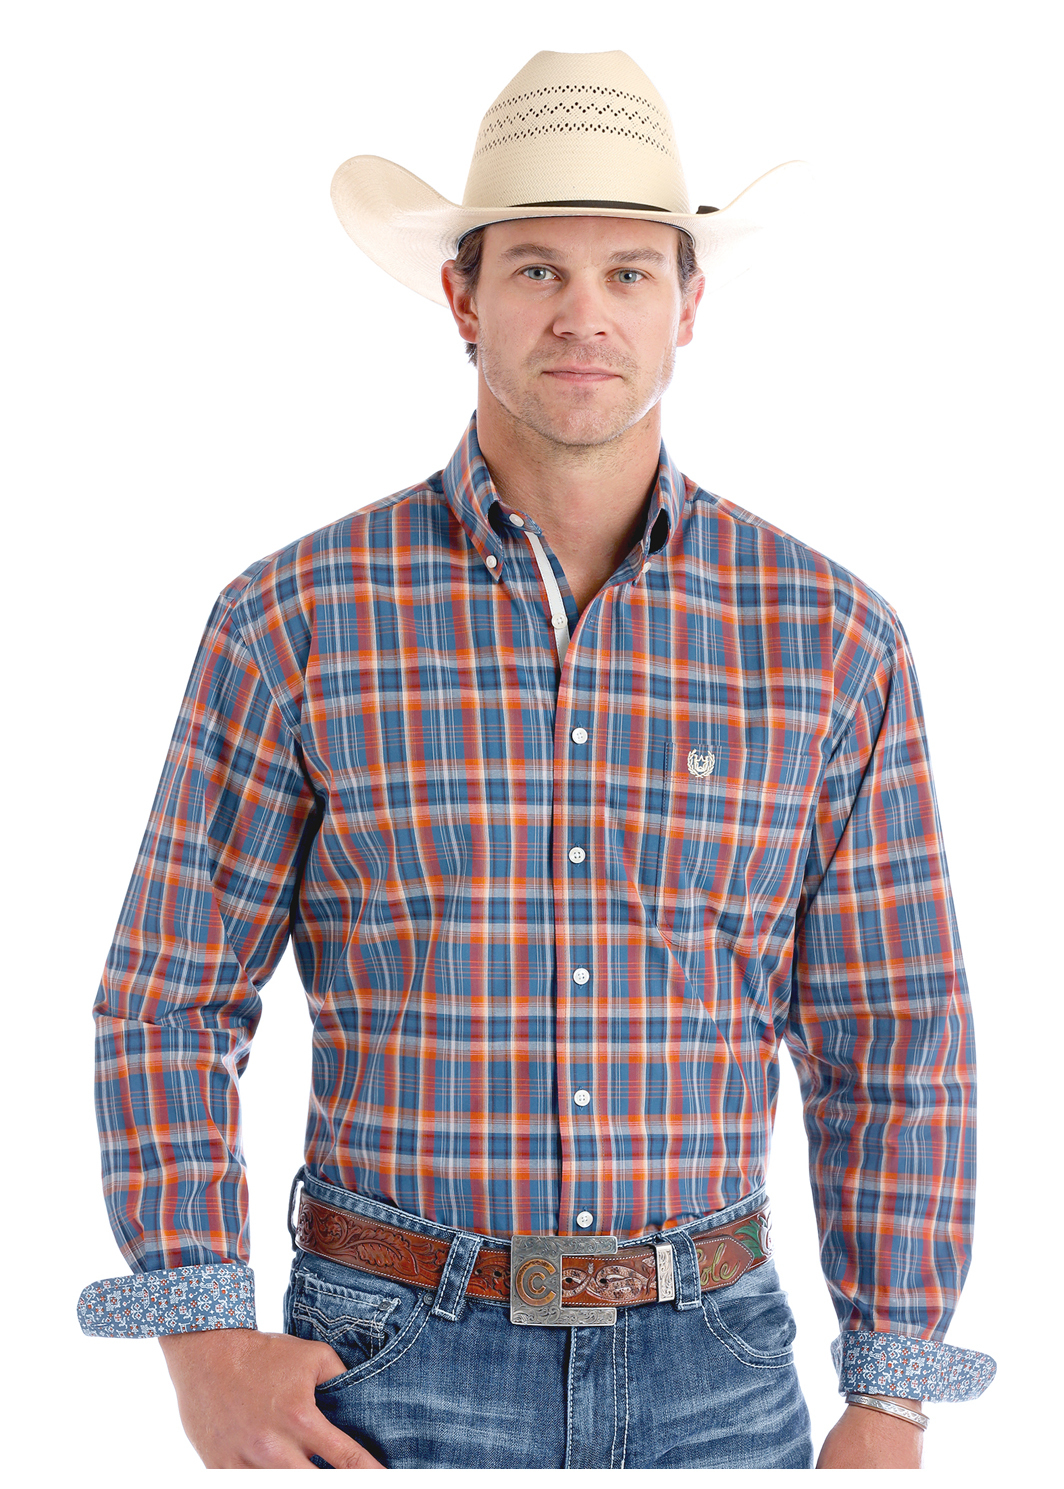 beed6cfb1 Western Riding Apparel, Casual & Show Apparel for Western Riders